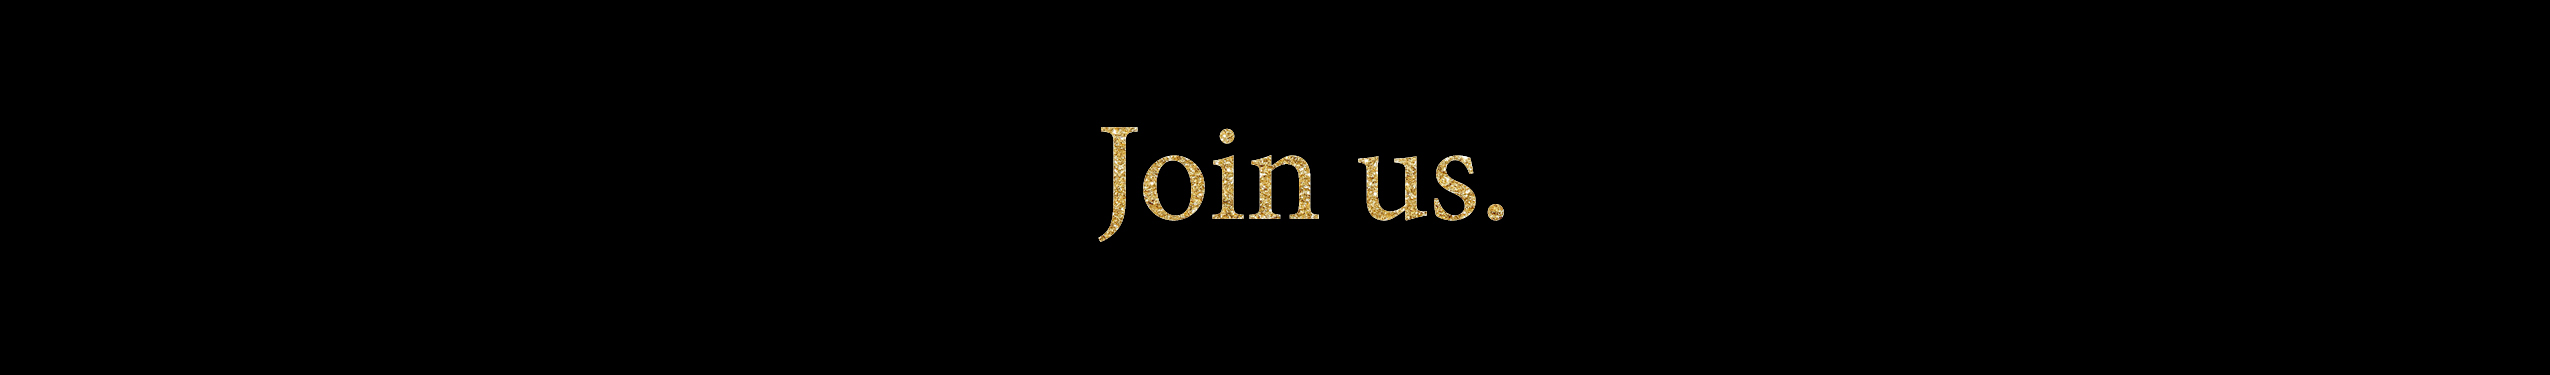 join us gold